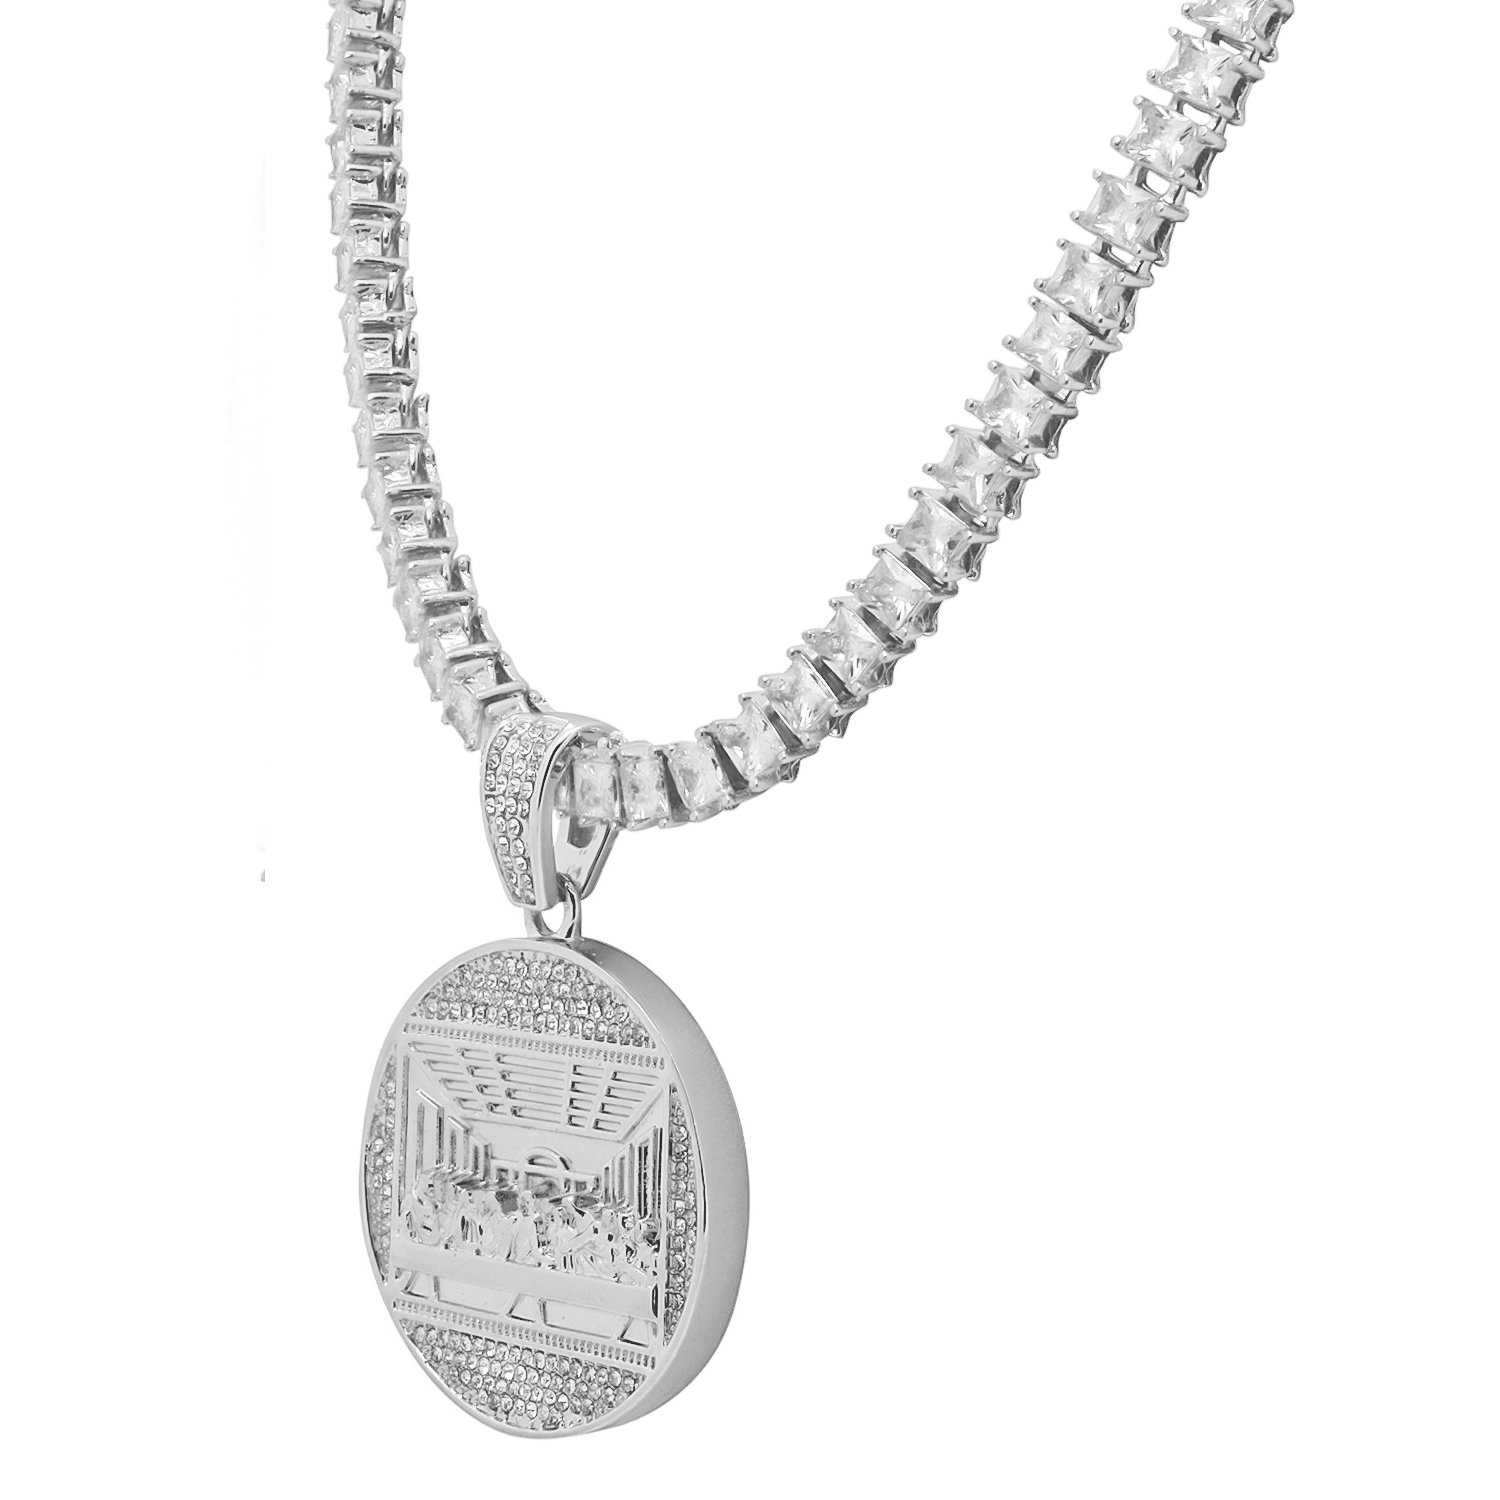 White Gold-Tone Iced Out Hip Hop Bling The Last Supper Pendant 1 Row Square Cubic Zirconia Princess Cut Stones Tennis Chain 20 Necklace Choker Chain